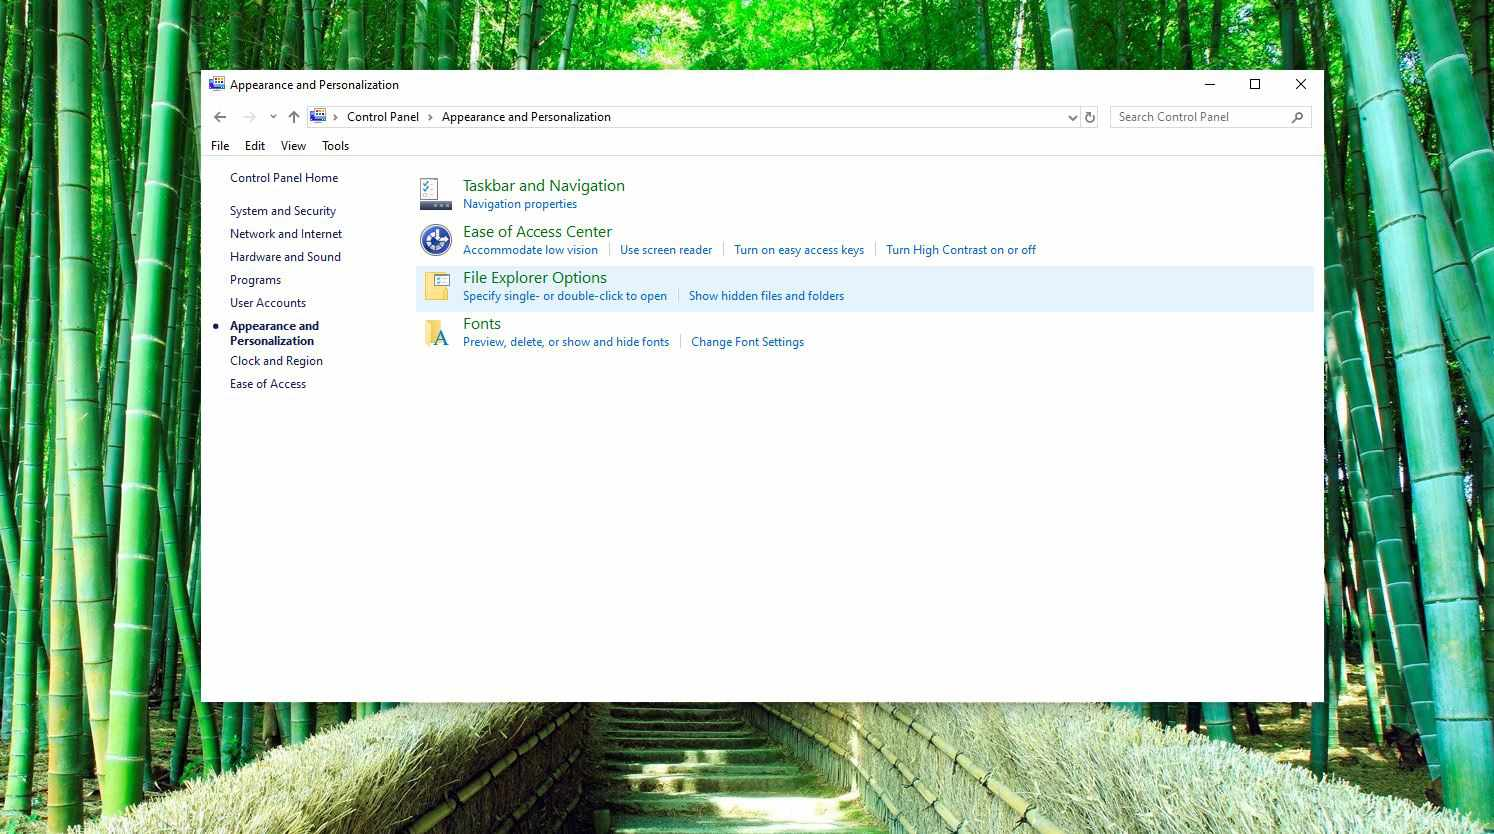 Screenshot of File Explorer Options in Appearance and Personalization